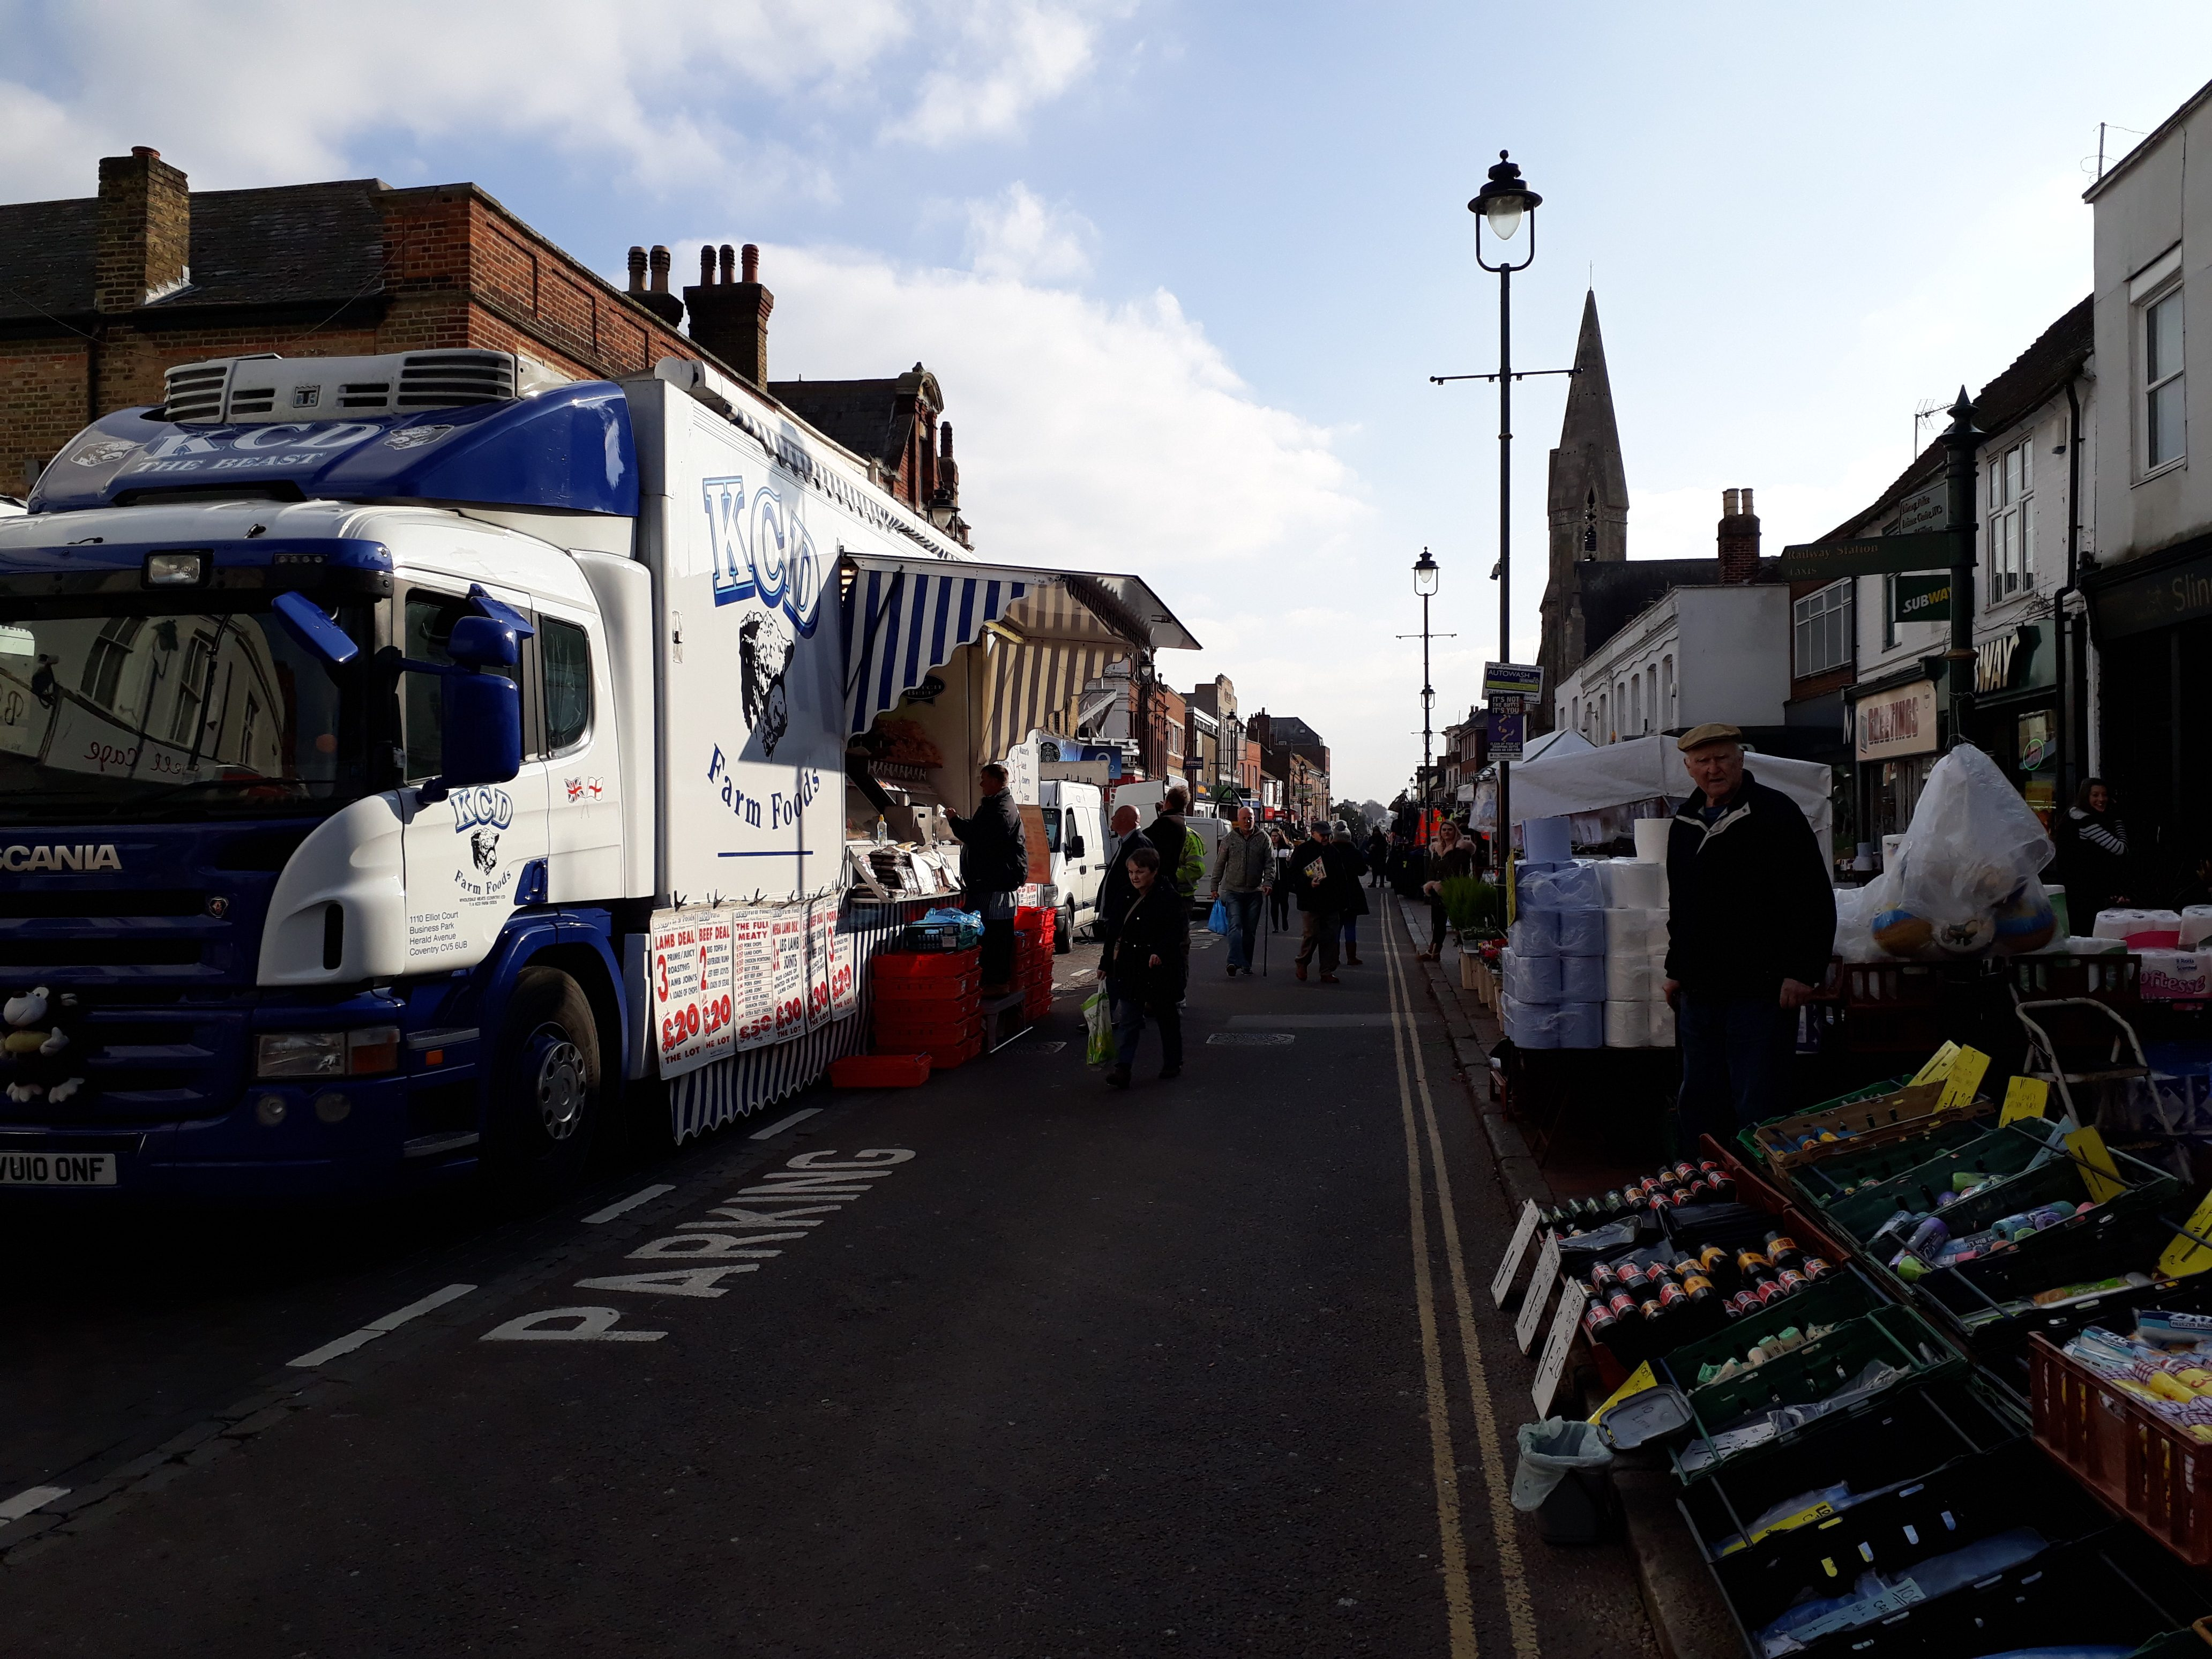 Sittingbourne Market on a Friday in the High Street